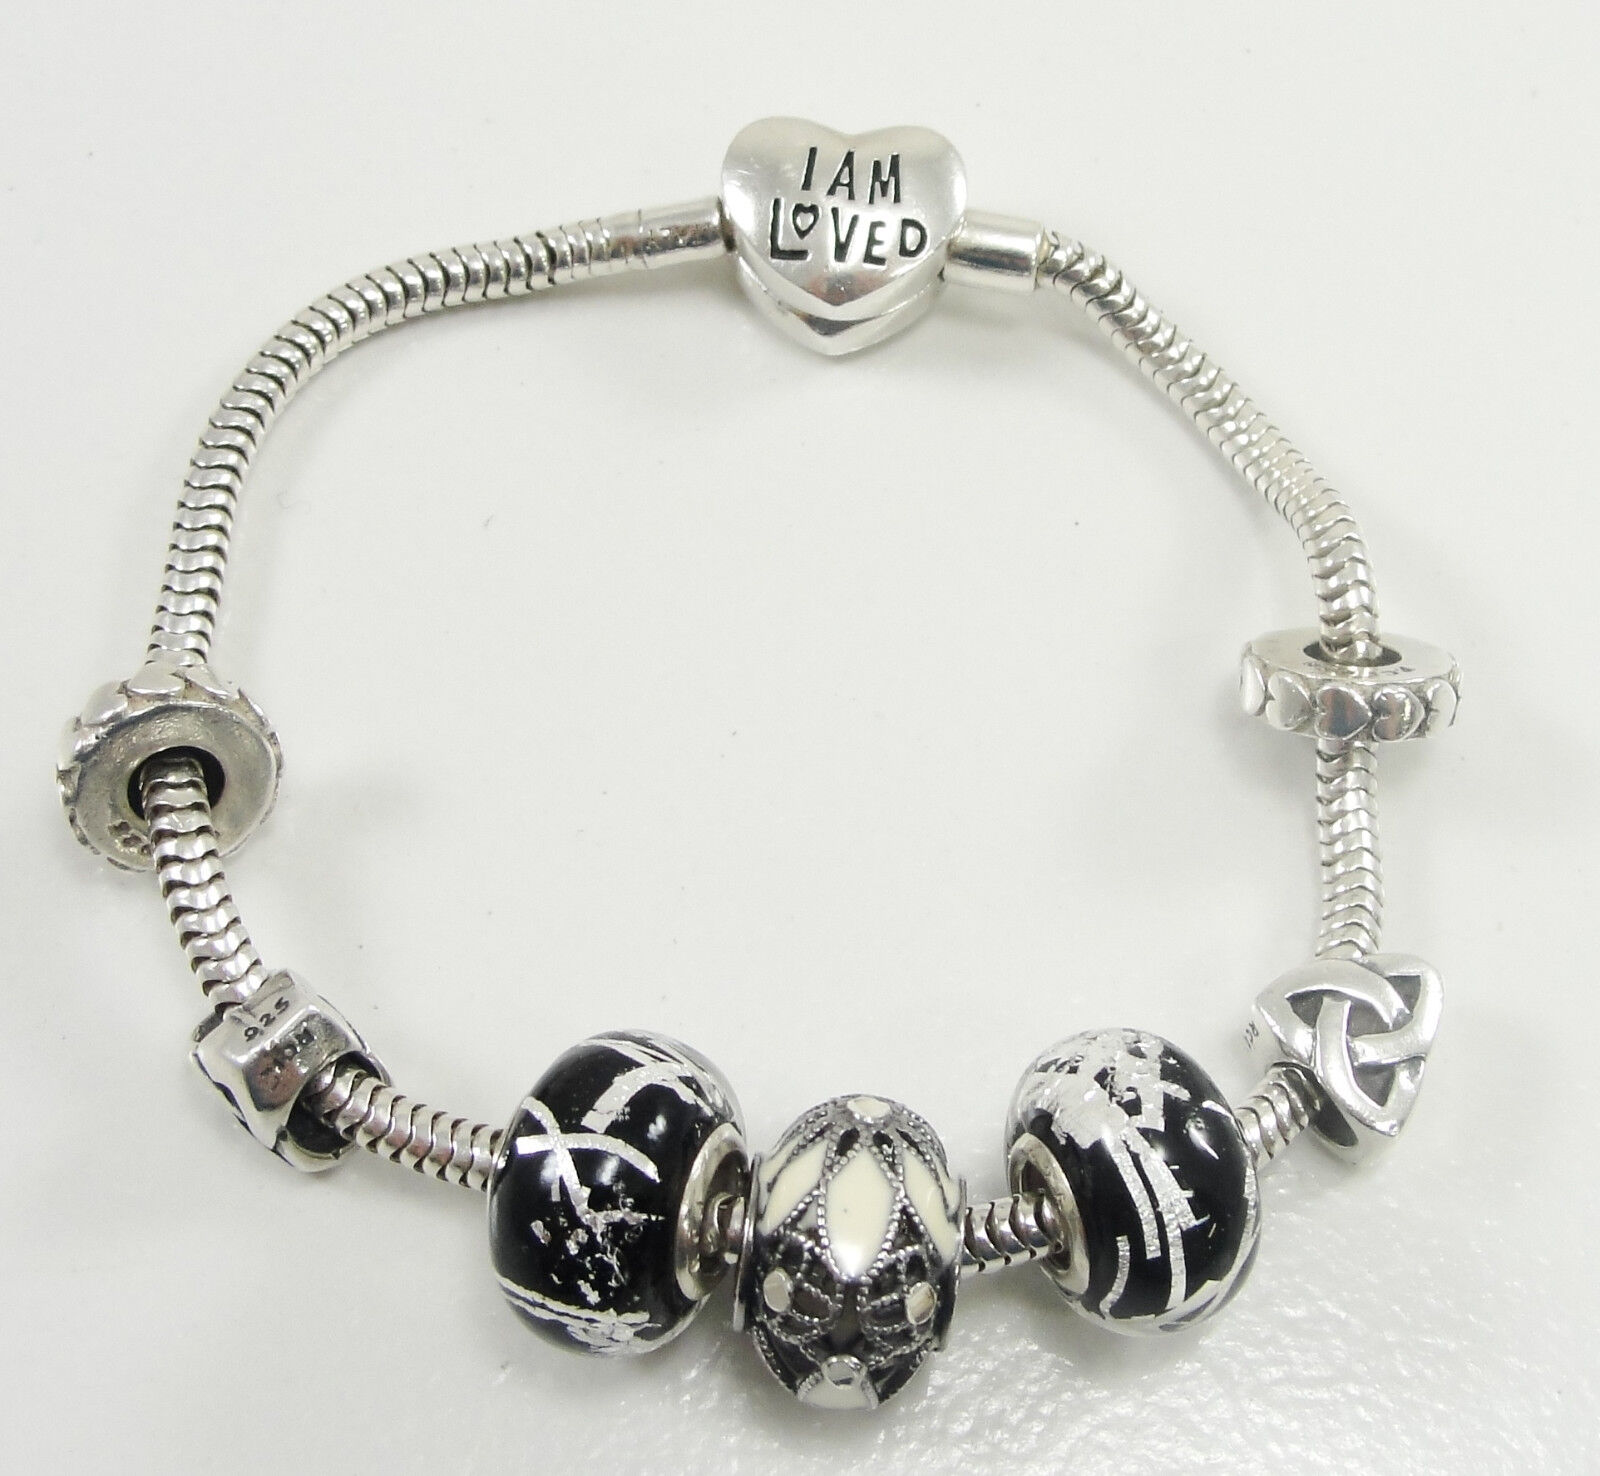 European Style Sterling Snake Chain Charm Bracelet 5 Charms Spacers Barrel Clasp